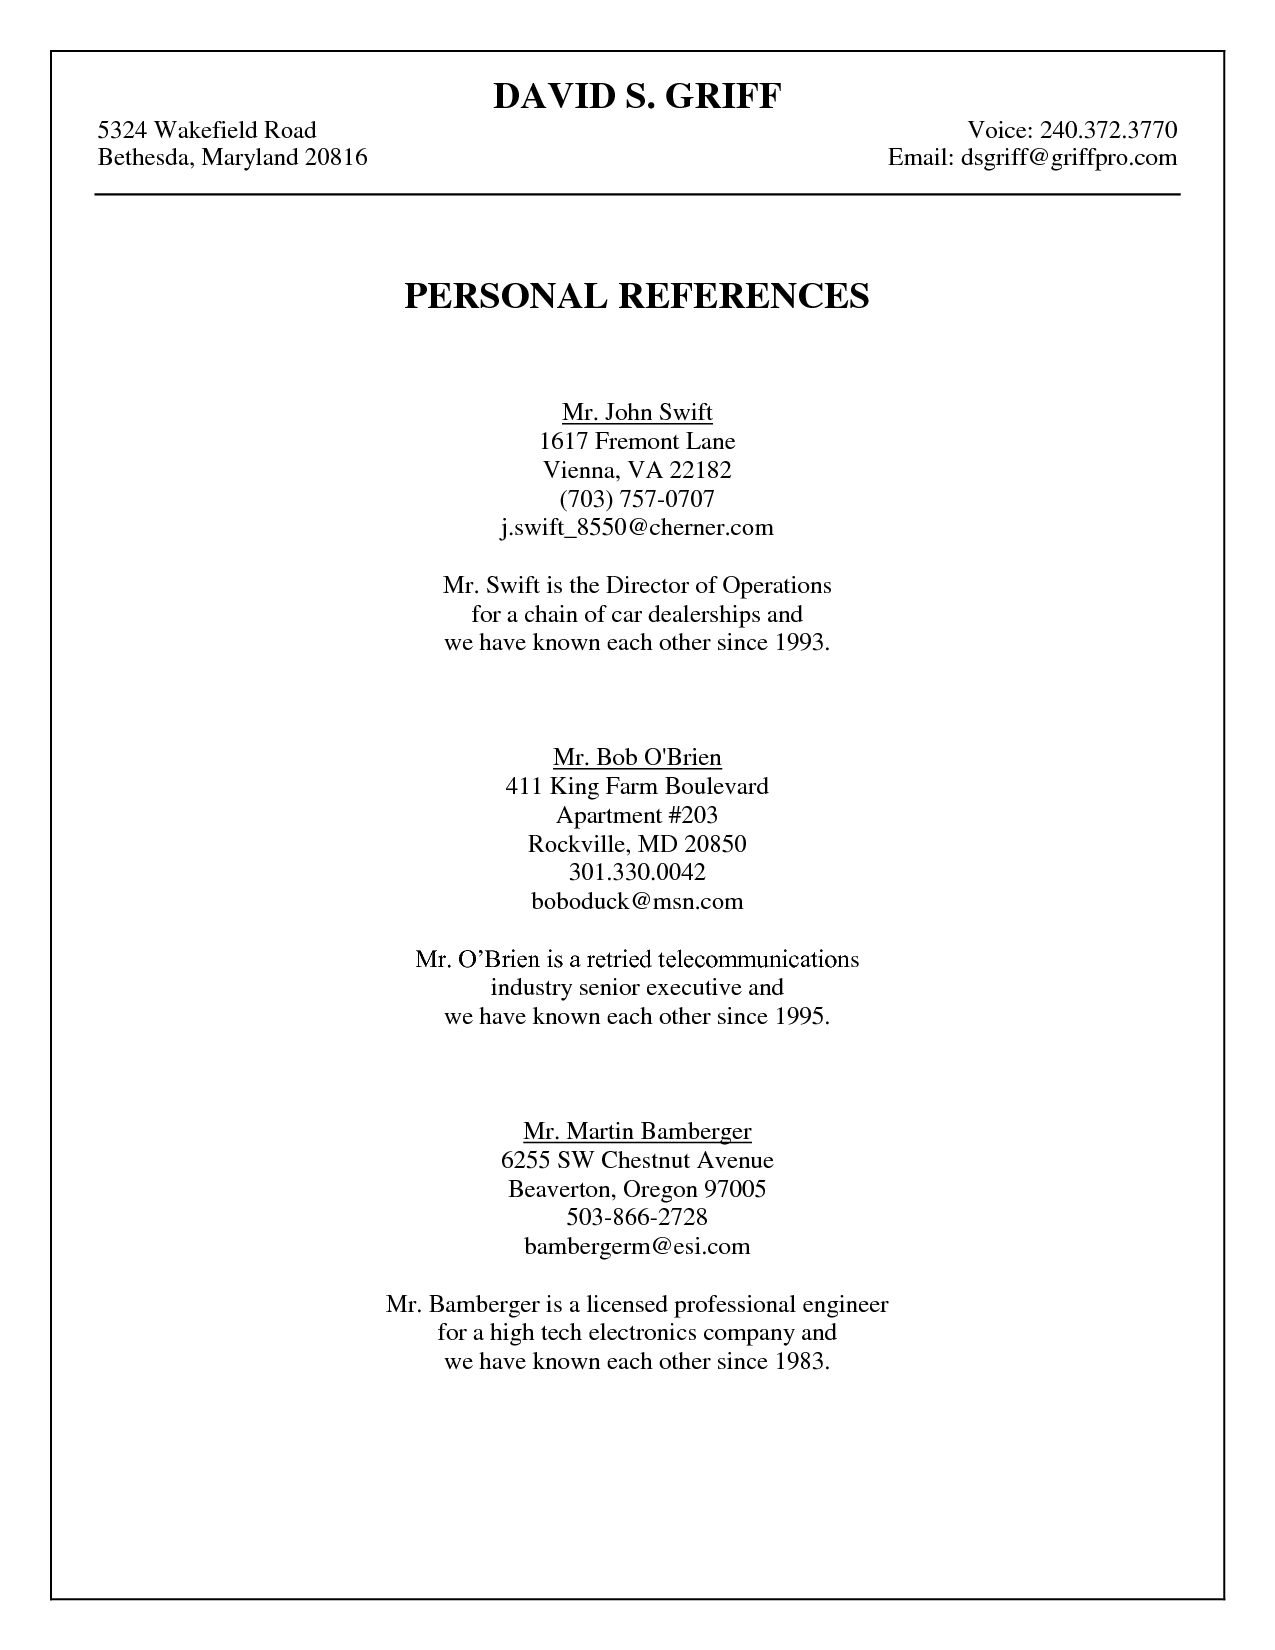 personal references resume